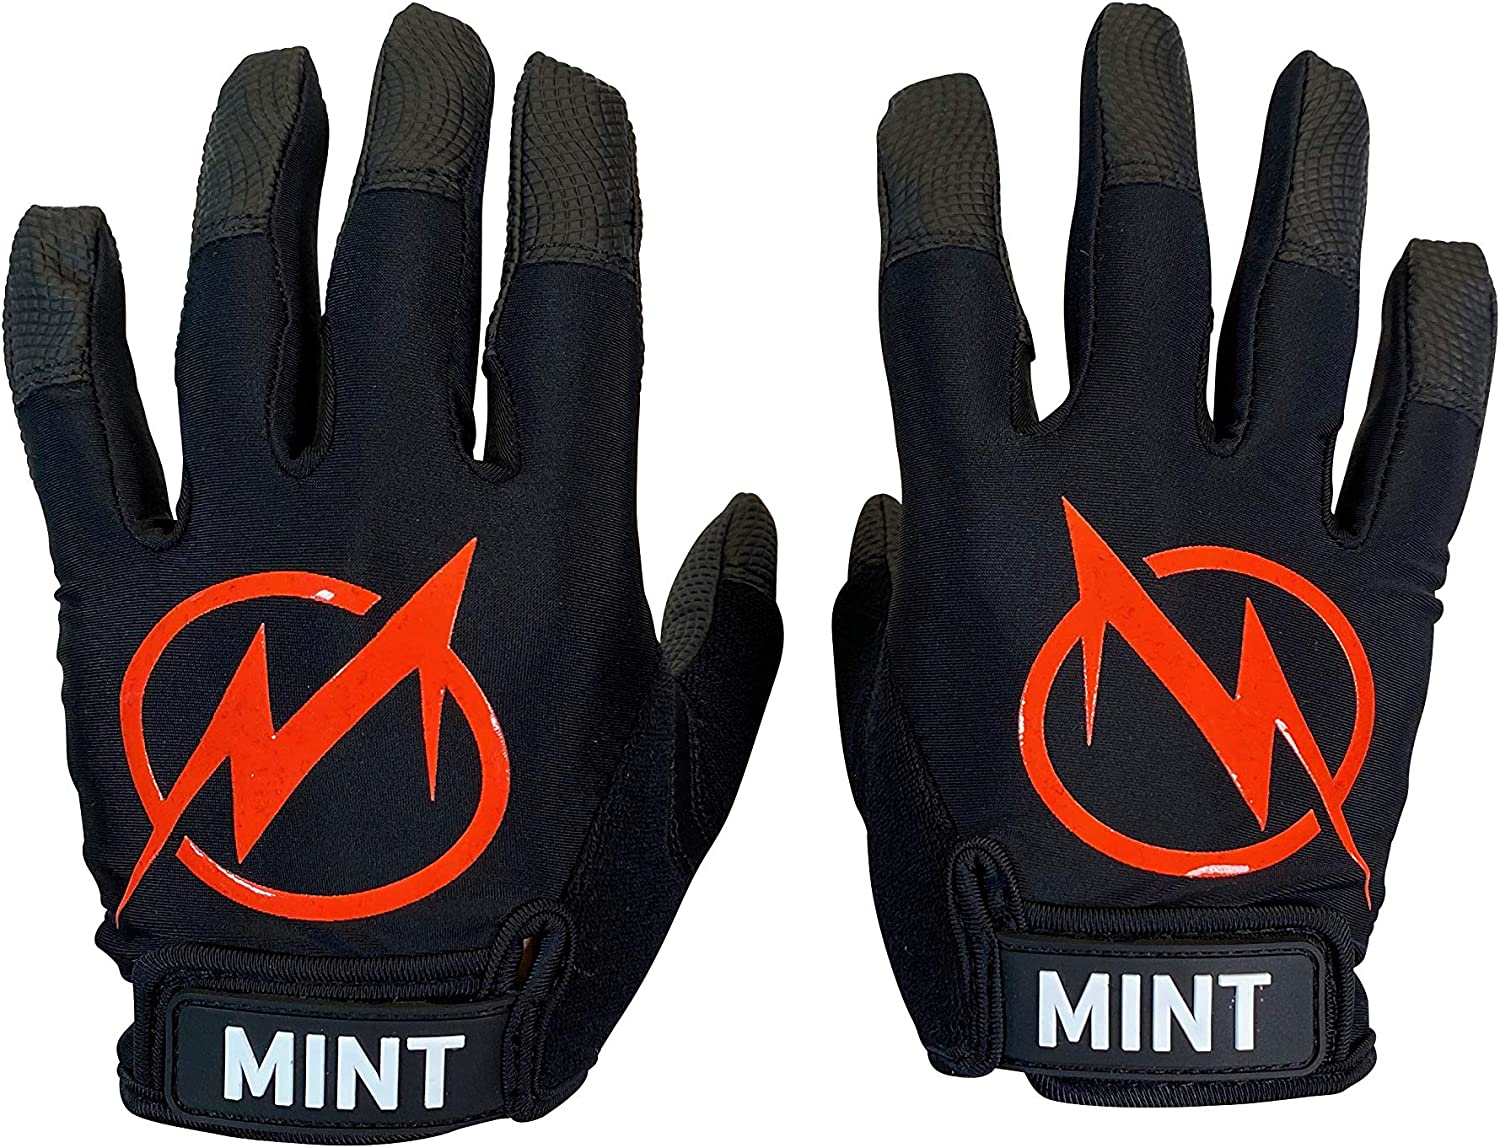 Cutter 4 Premium Ultimate Frisbee Gloves by Mint